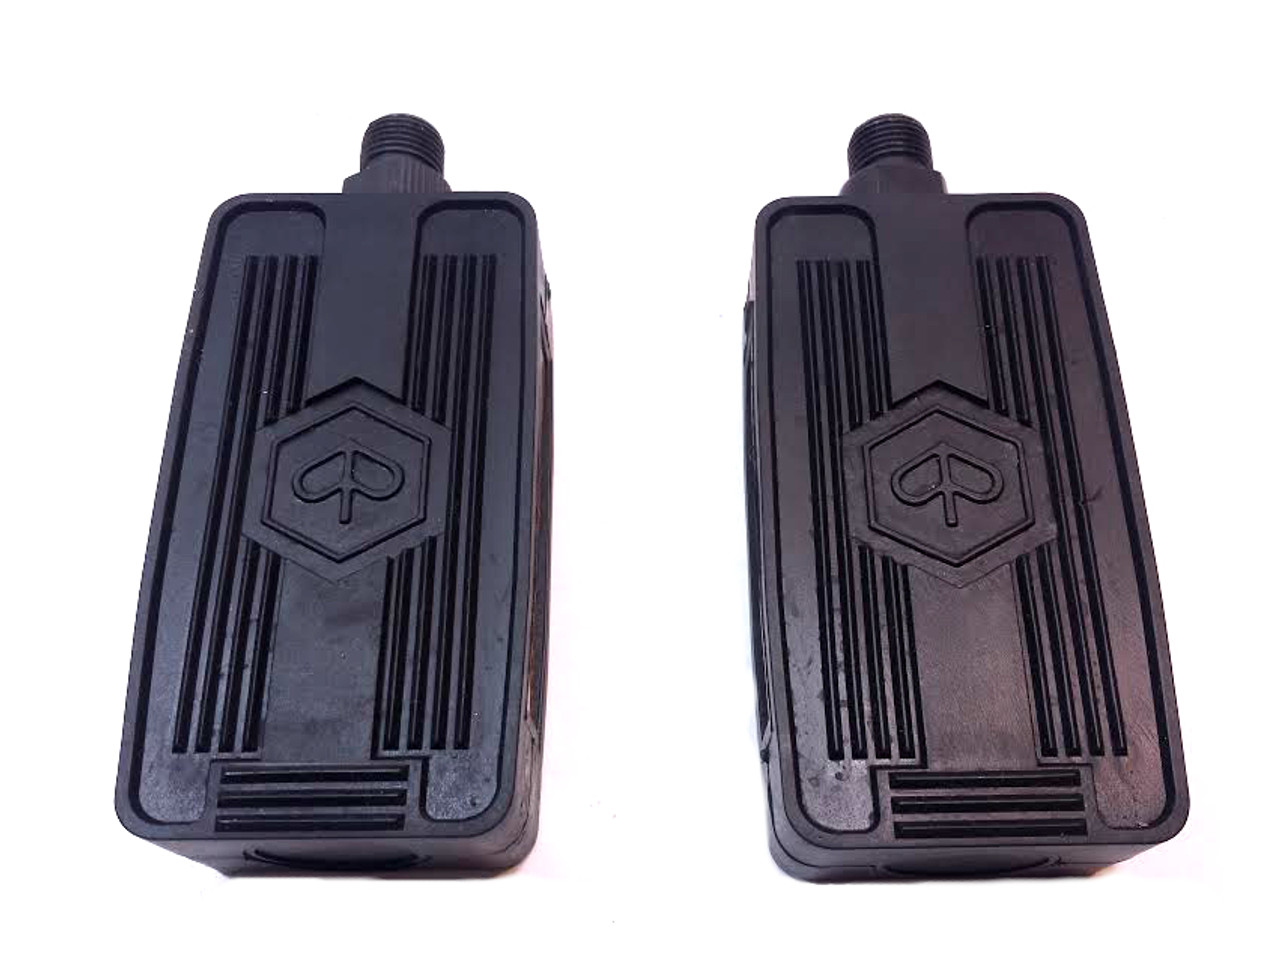 Moped Pedal Set, Vespa / Piaggio style - With Logo